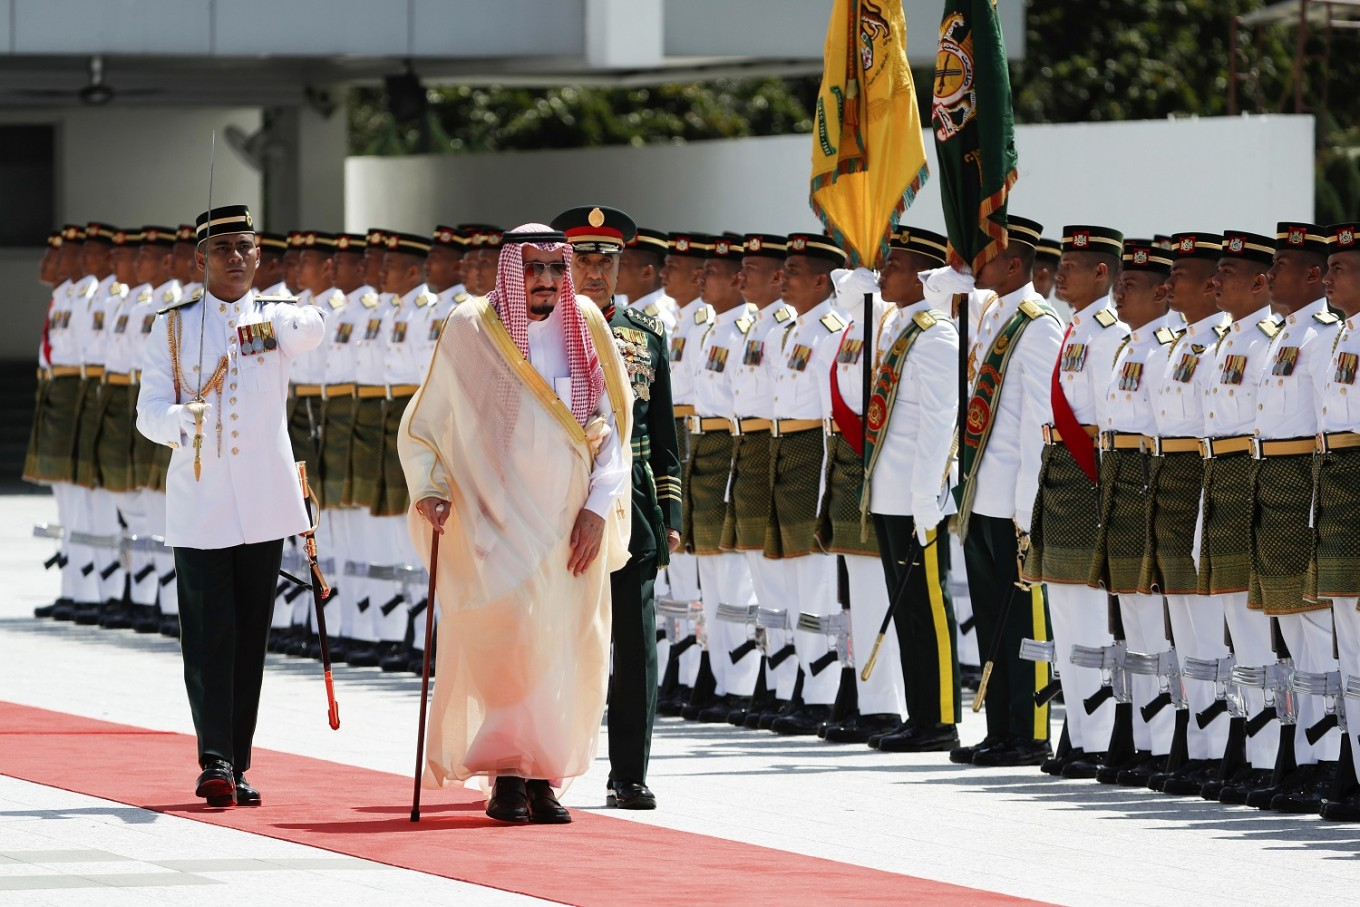 10 interesting facts about King Salman's visit to Indonesia